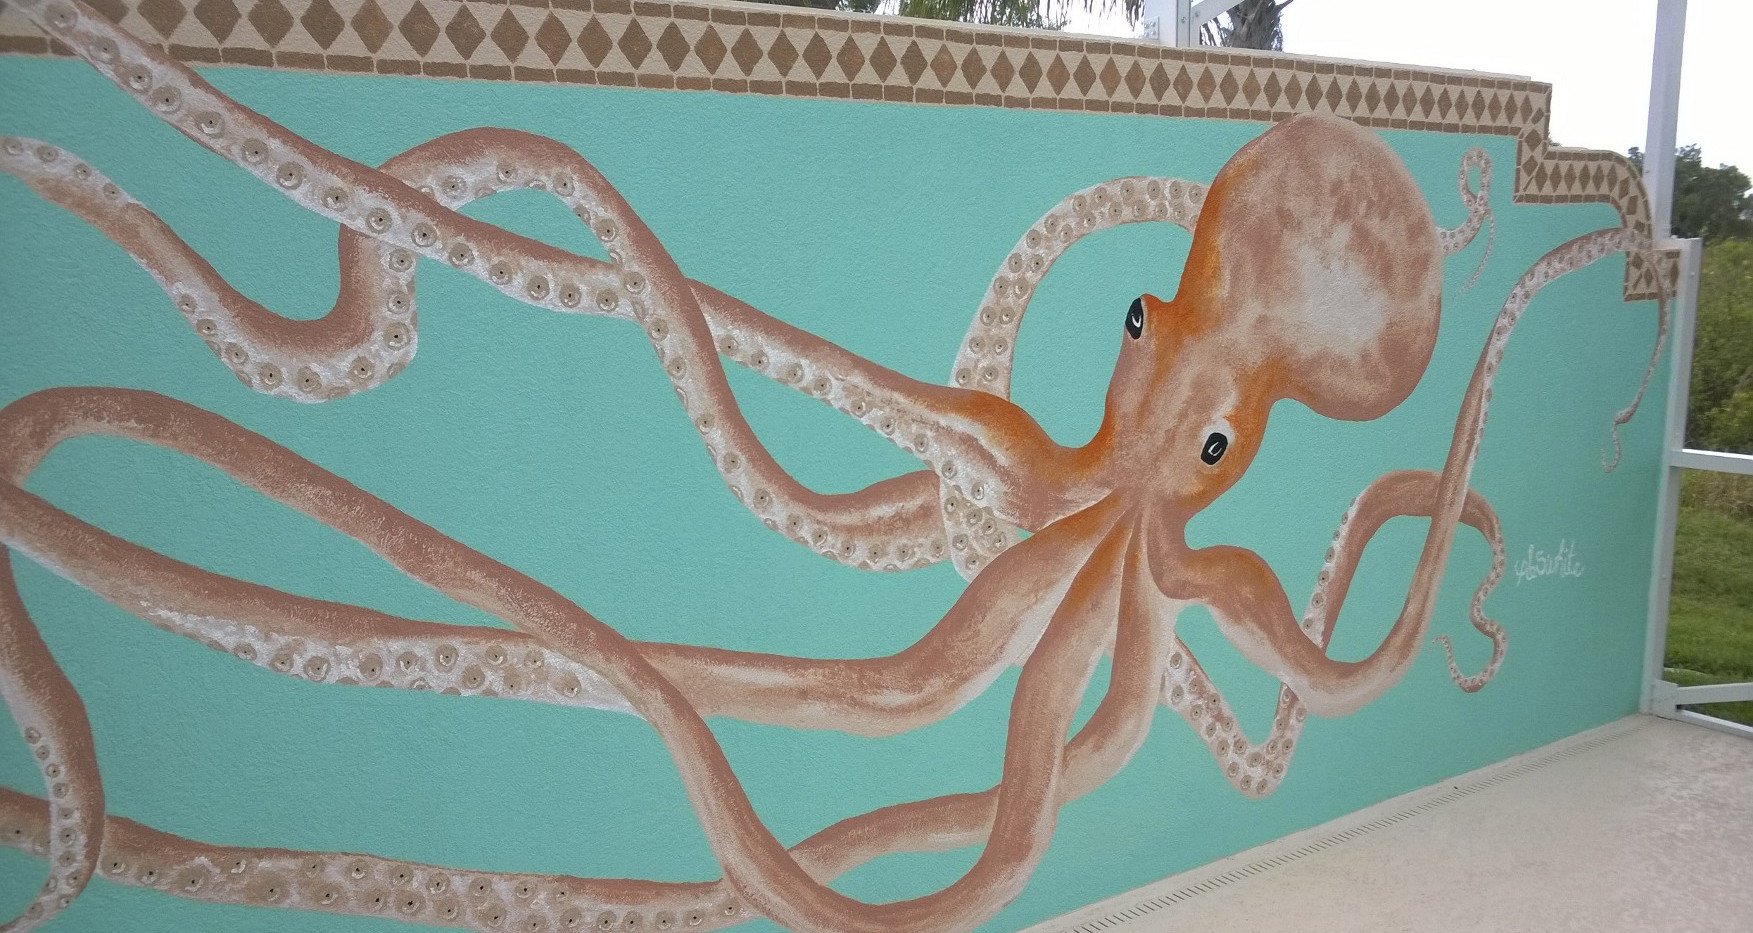 Octopus mural in Tradition